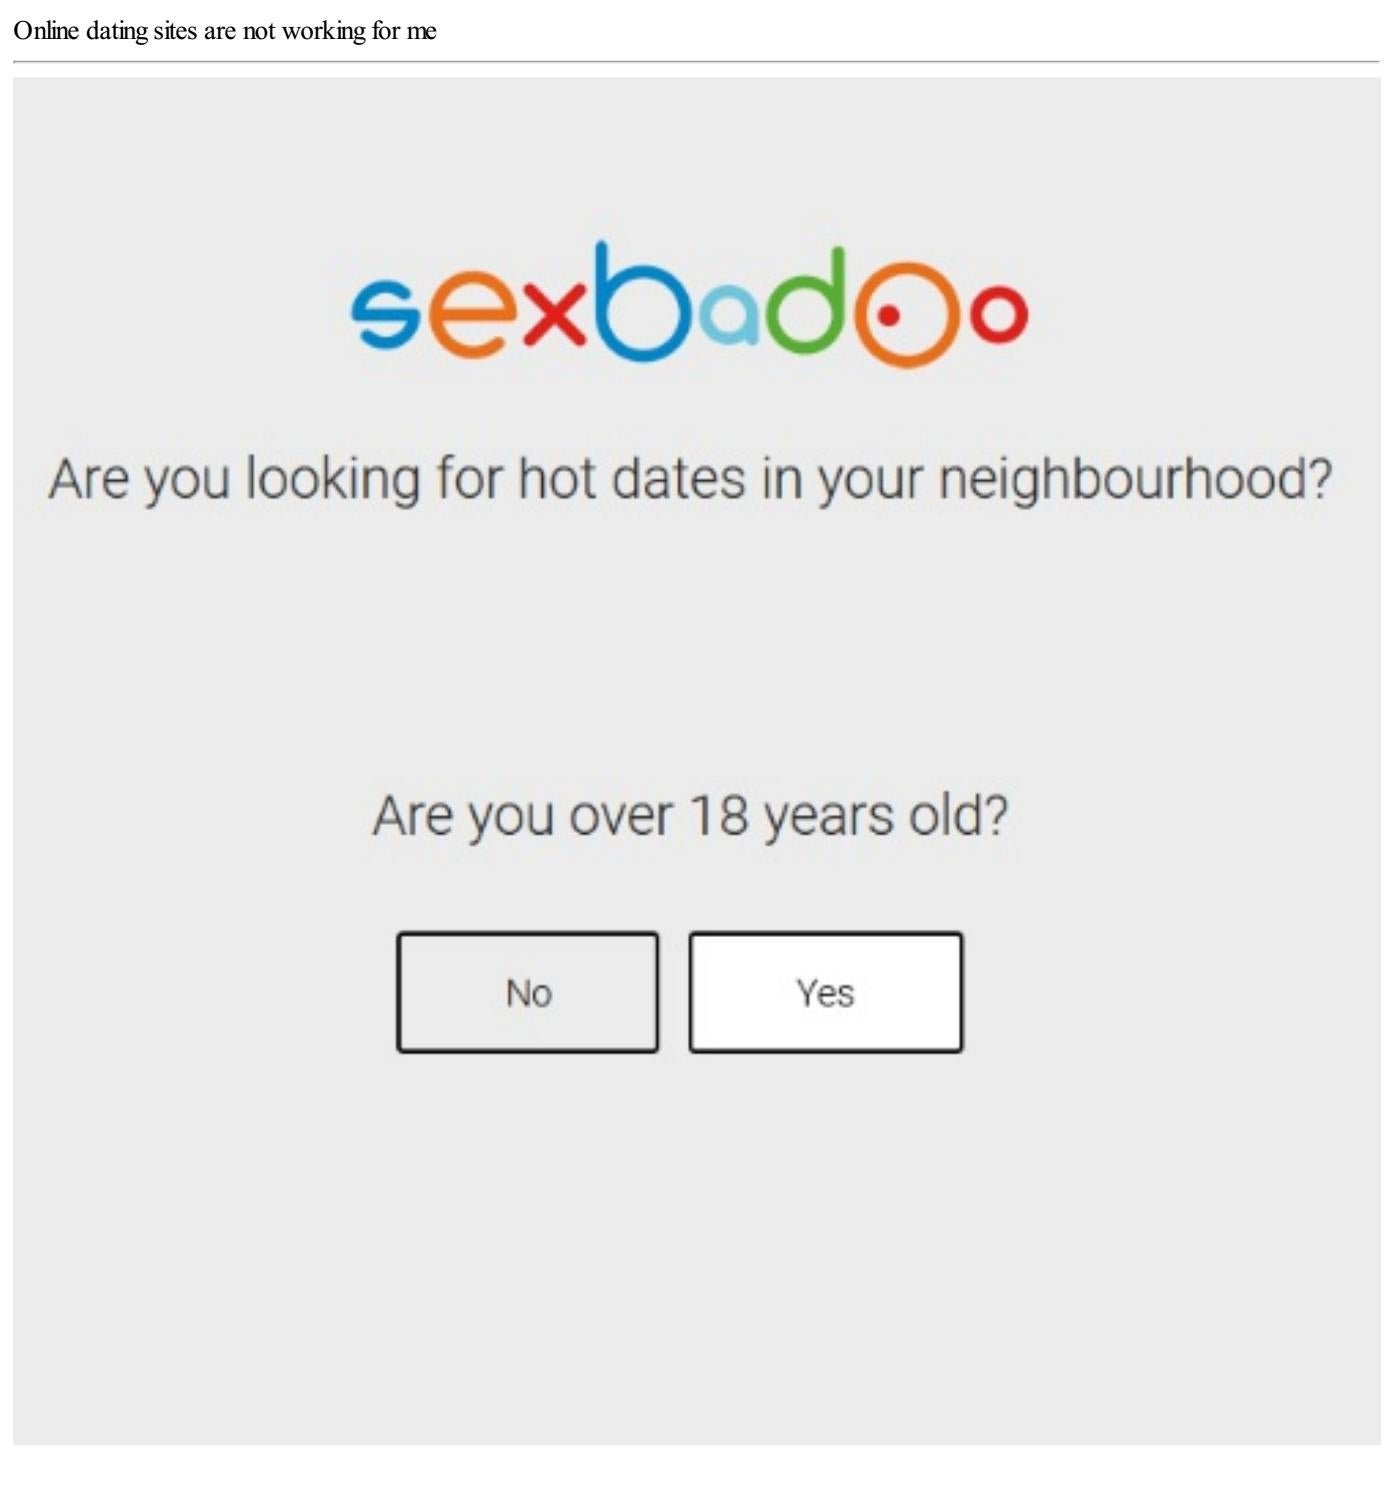 Dating sites are not working for me